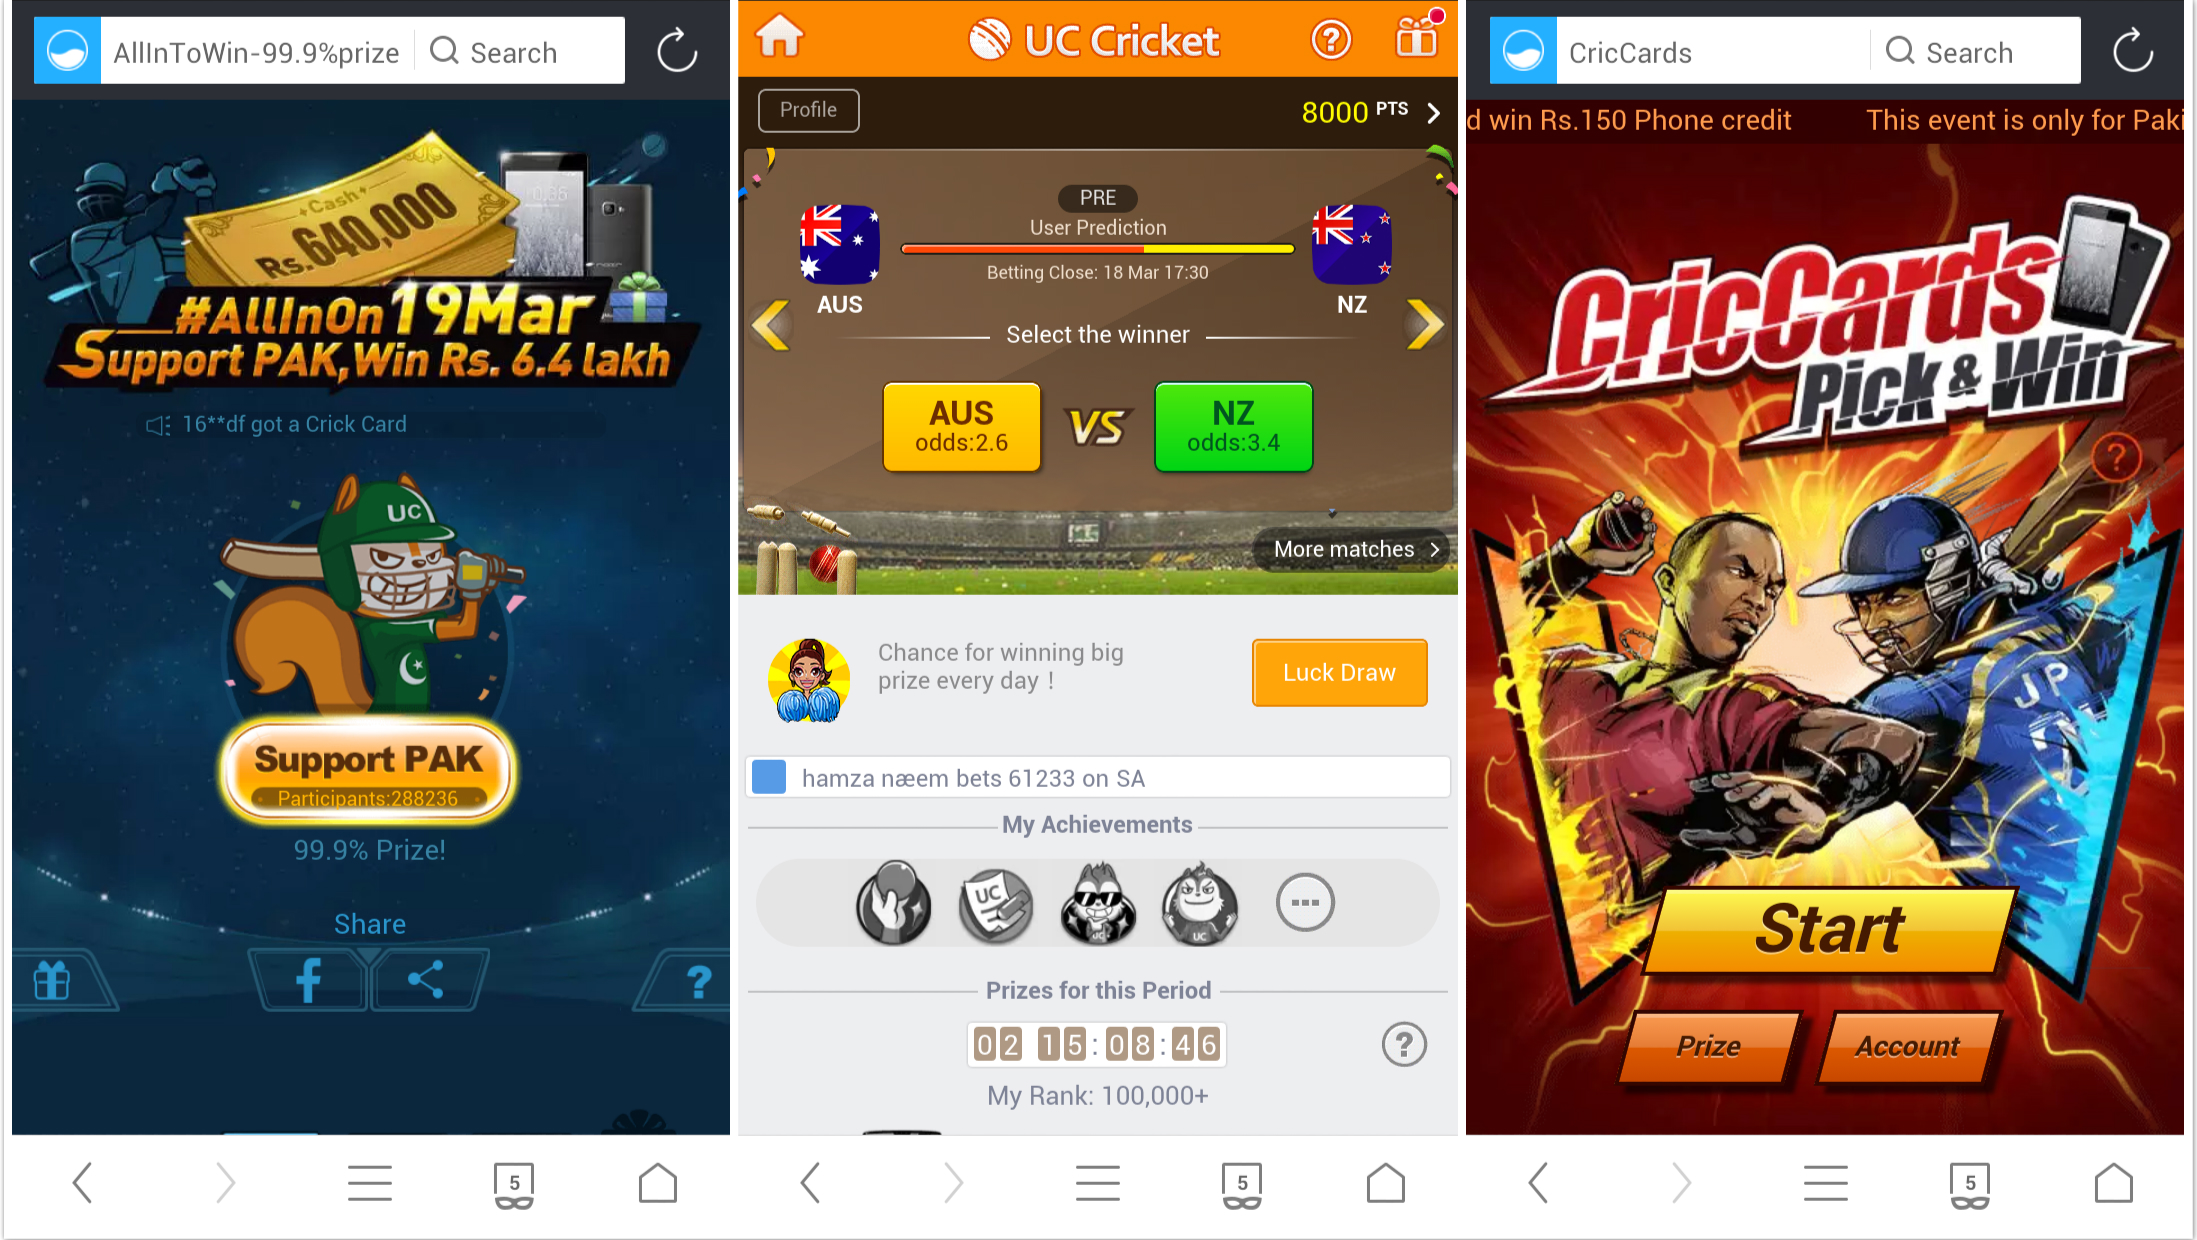 UC Browser launches 1st series of Cricket Themed Web Games